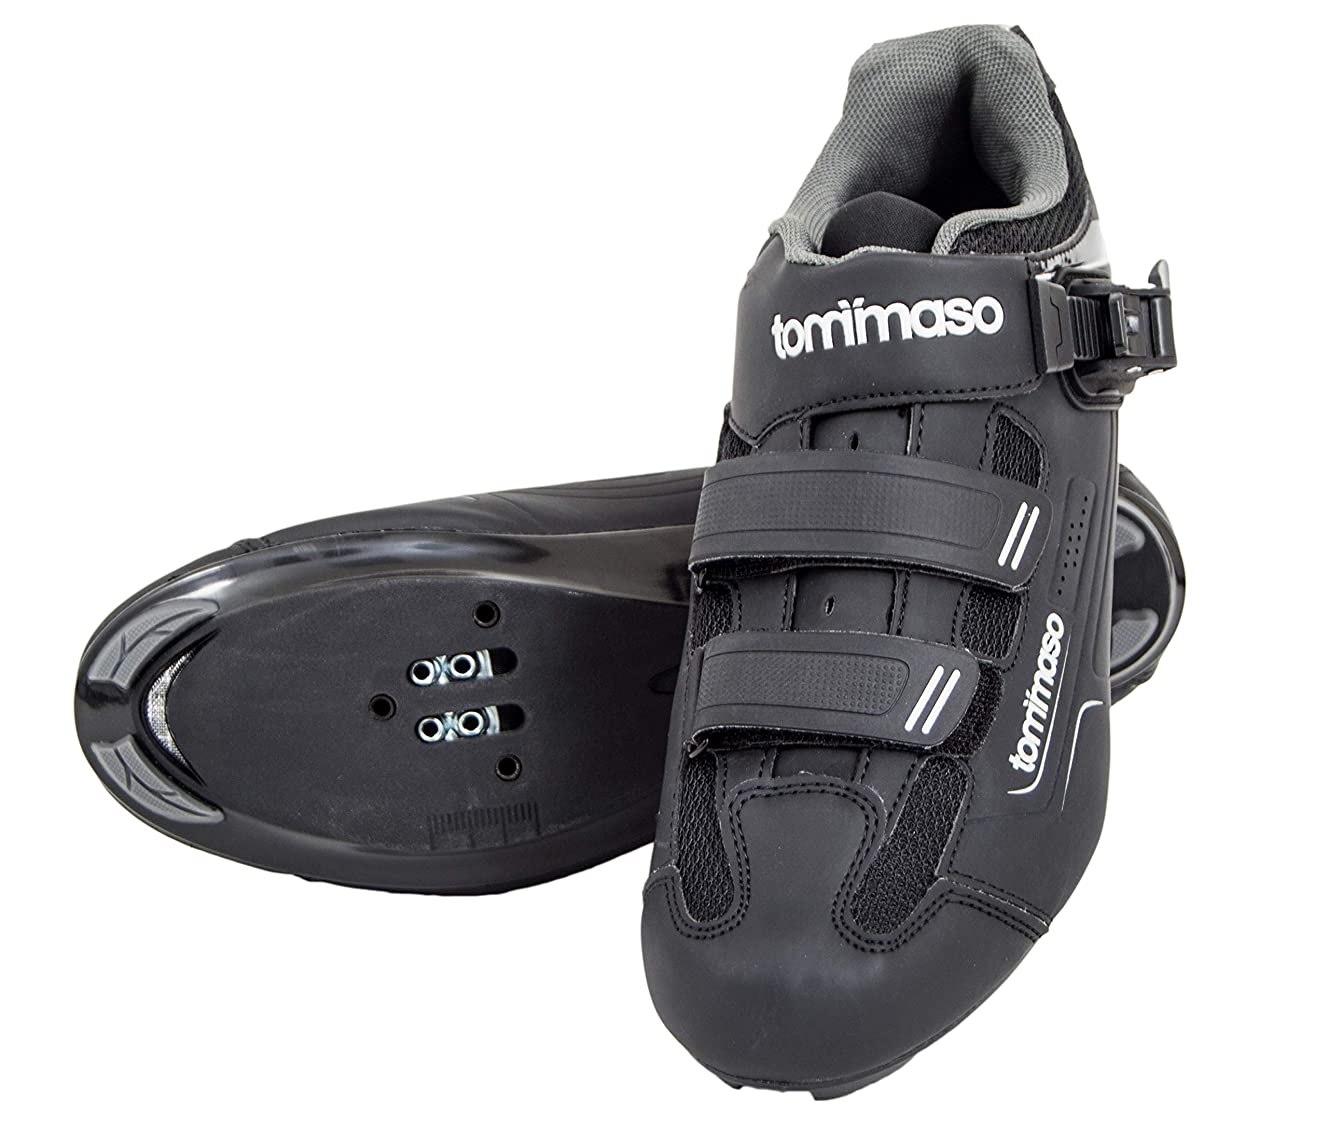 tommaso Strada 200 Road Touring Cycling Spinning Shoe with Buckle